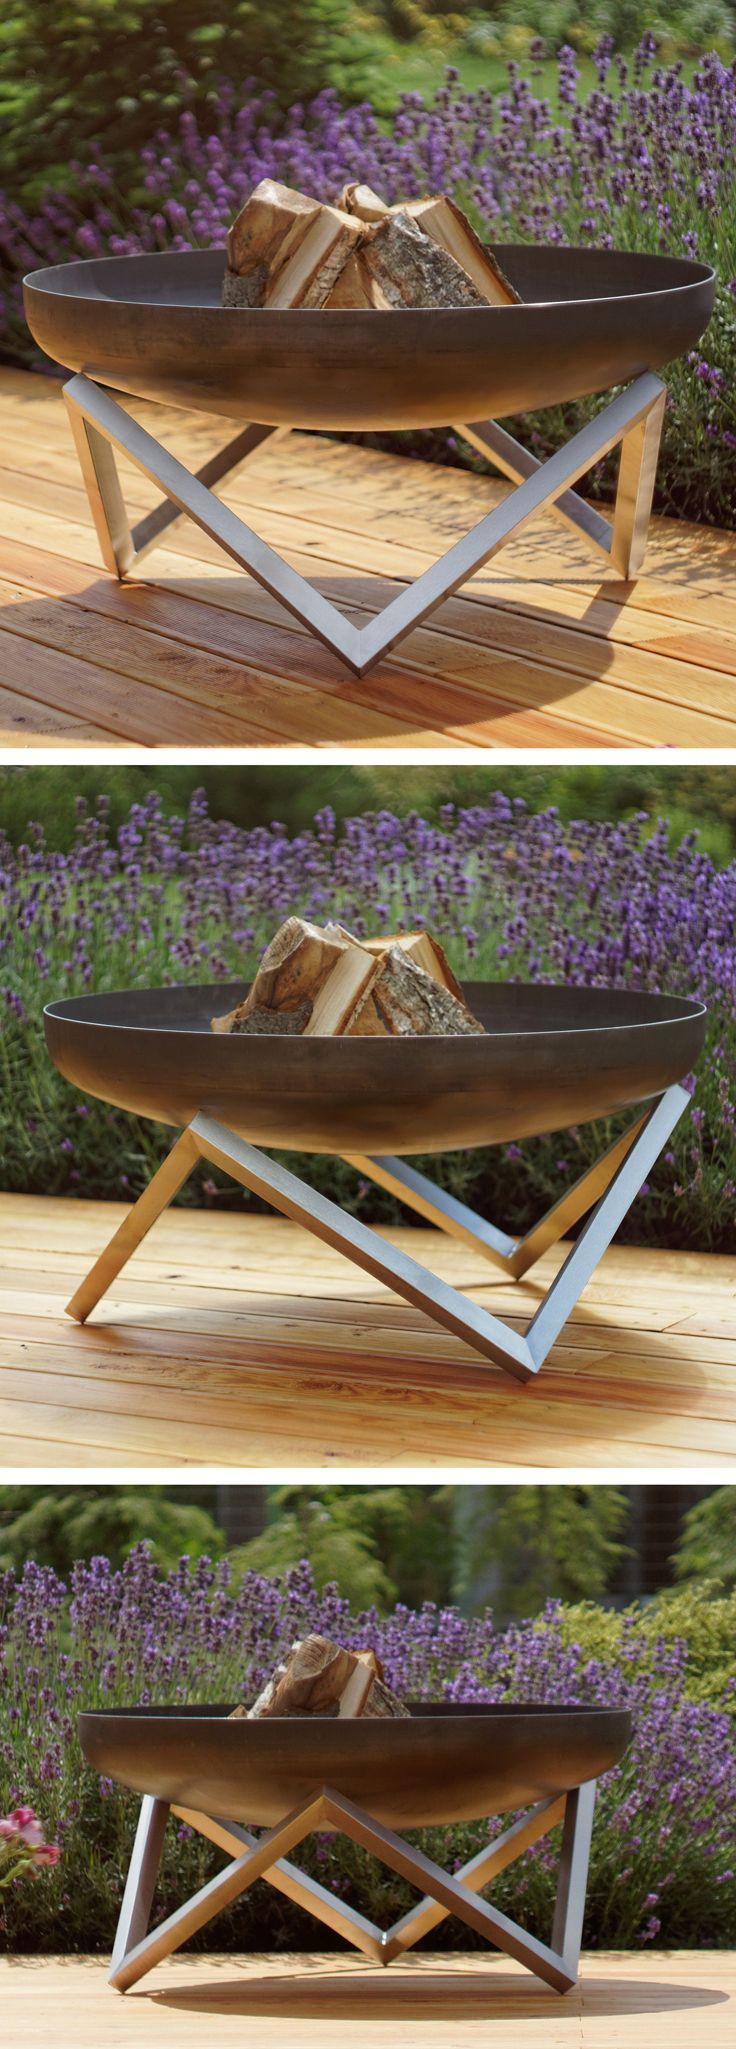 The Memel Fire Pit By Curonian Deco Modern And Unique Fire Pits, Planters  And Outdoor Furniture For Organic Integration Into Contemporary Garden And  Outdoor ...